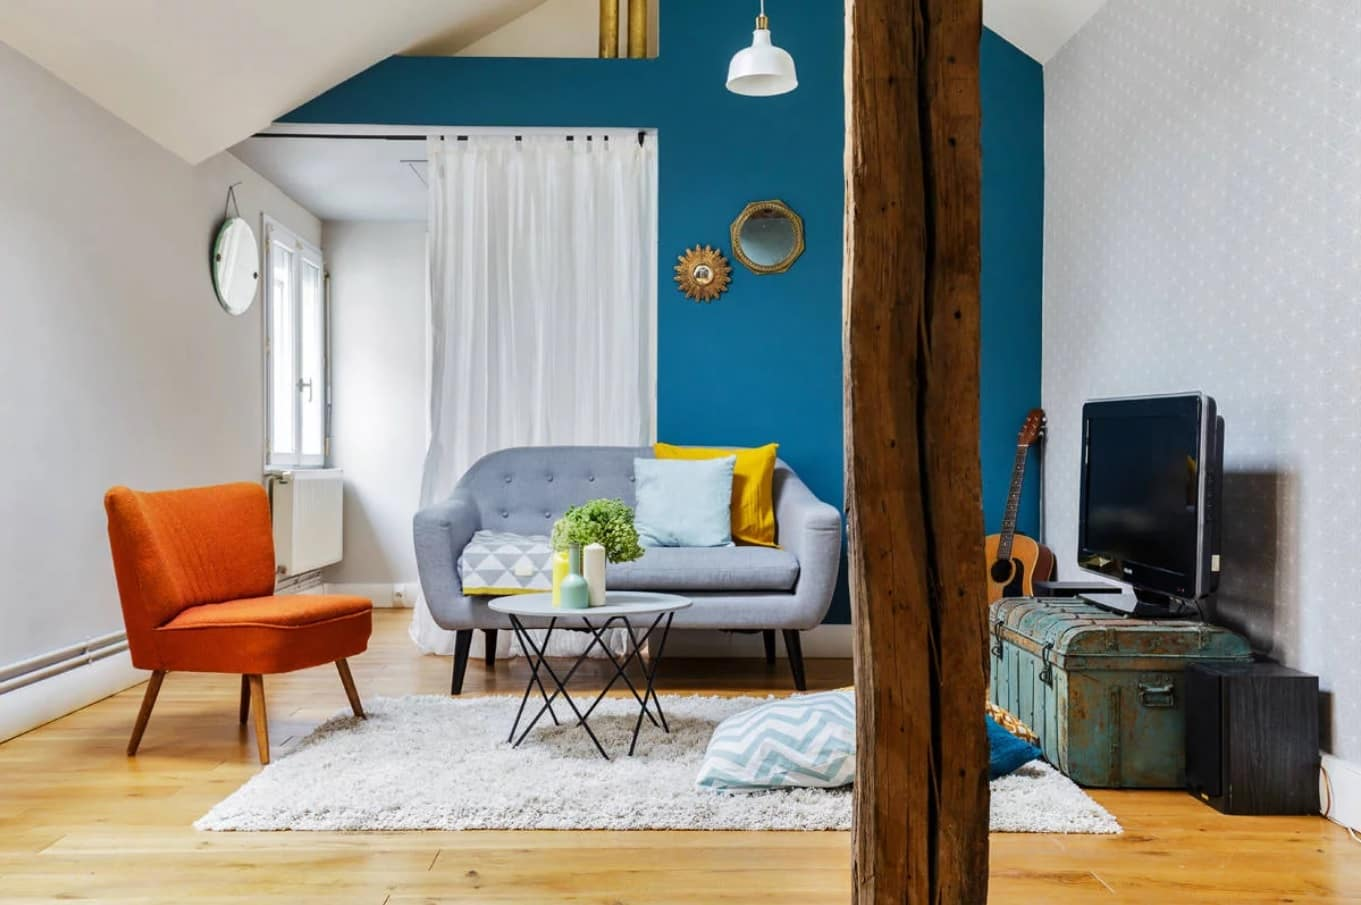 Things to Consider when Renovating A Home. Great color palette for the casual living room with blue painted walls and colorful furniture